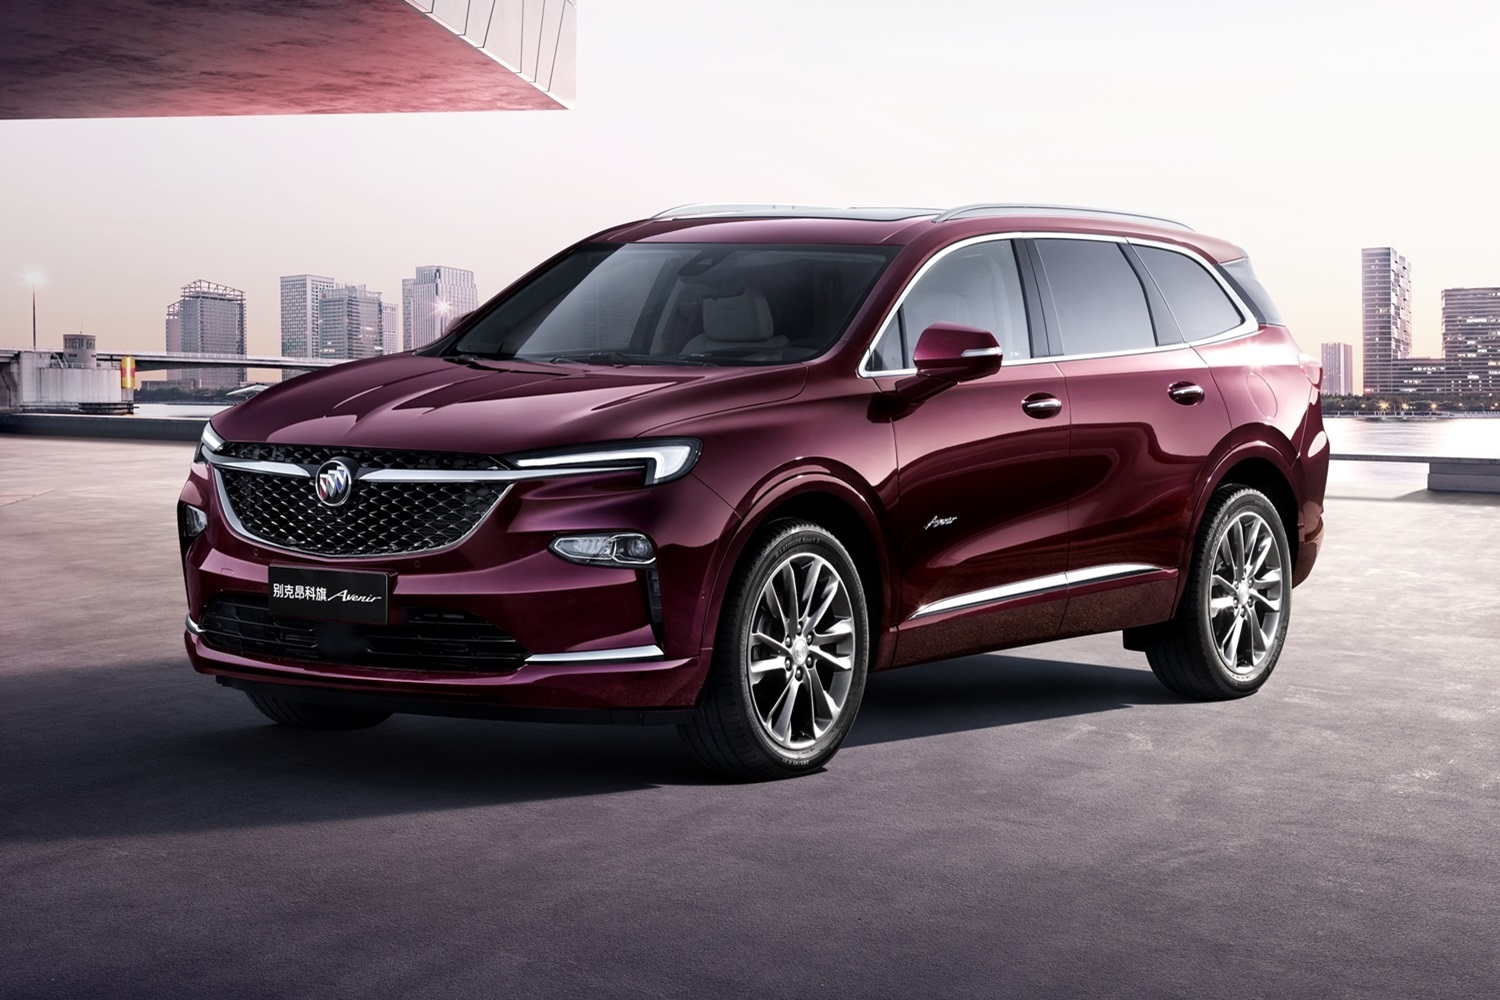 Gm Shows All-New China-Spec Buick Enclave Avenir | Gm Authority Build Your Own 2021 Buick Enclave